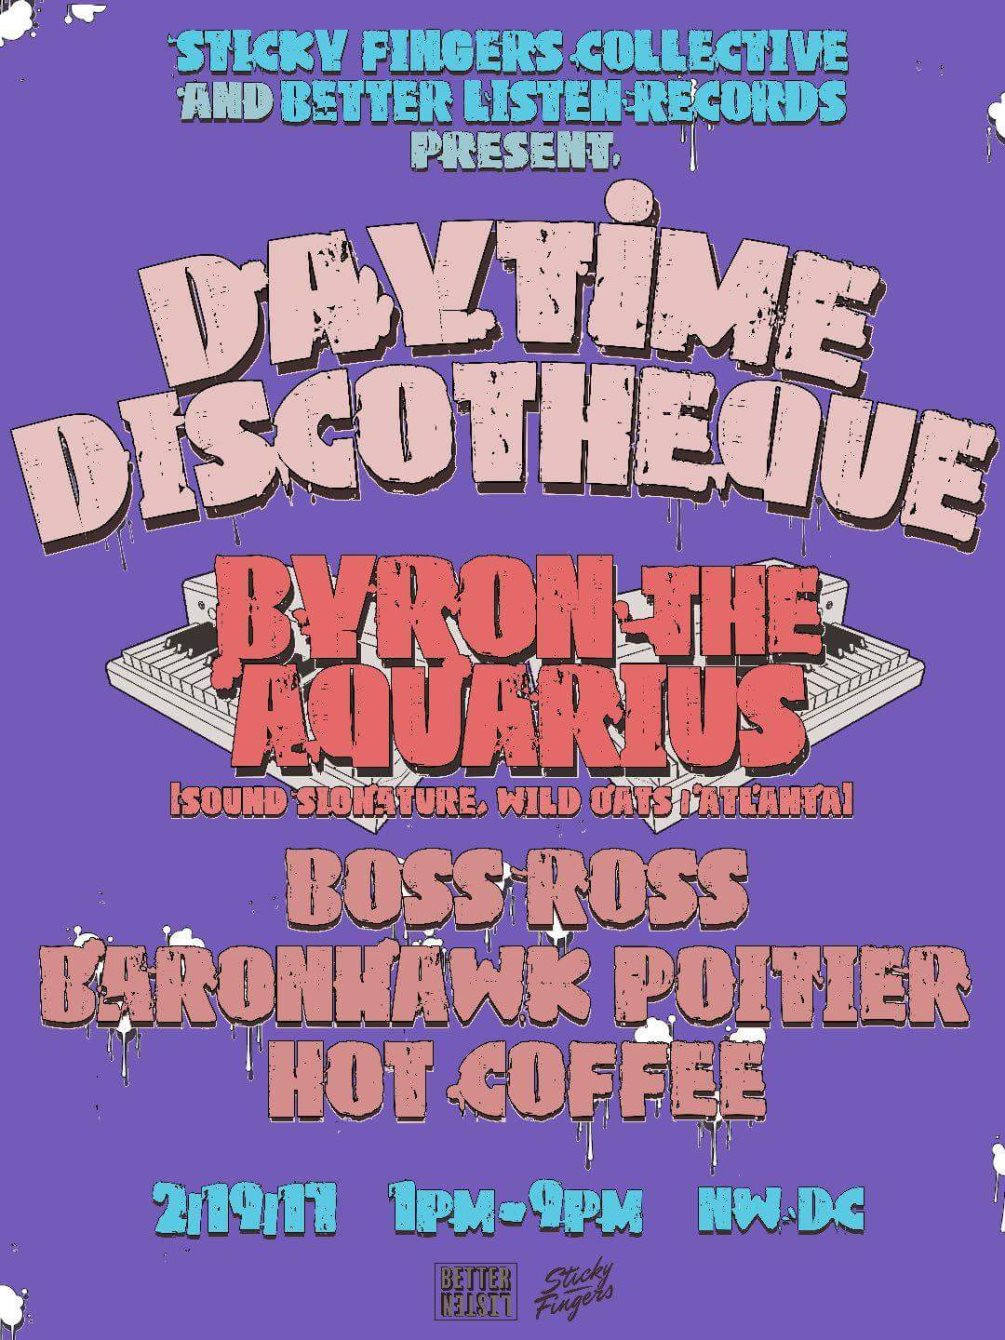 Daytime Discothèque Feat. Byron The Aquarius with Boss Ross, Baronhawk Poitier, Hot Coffee - Flyer front